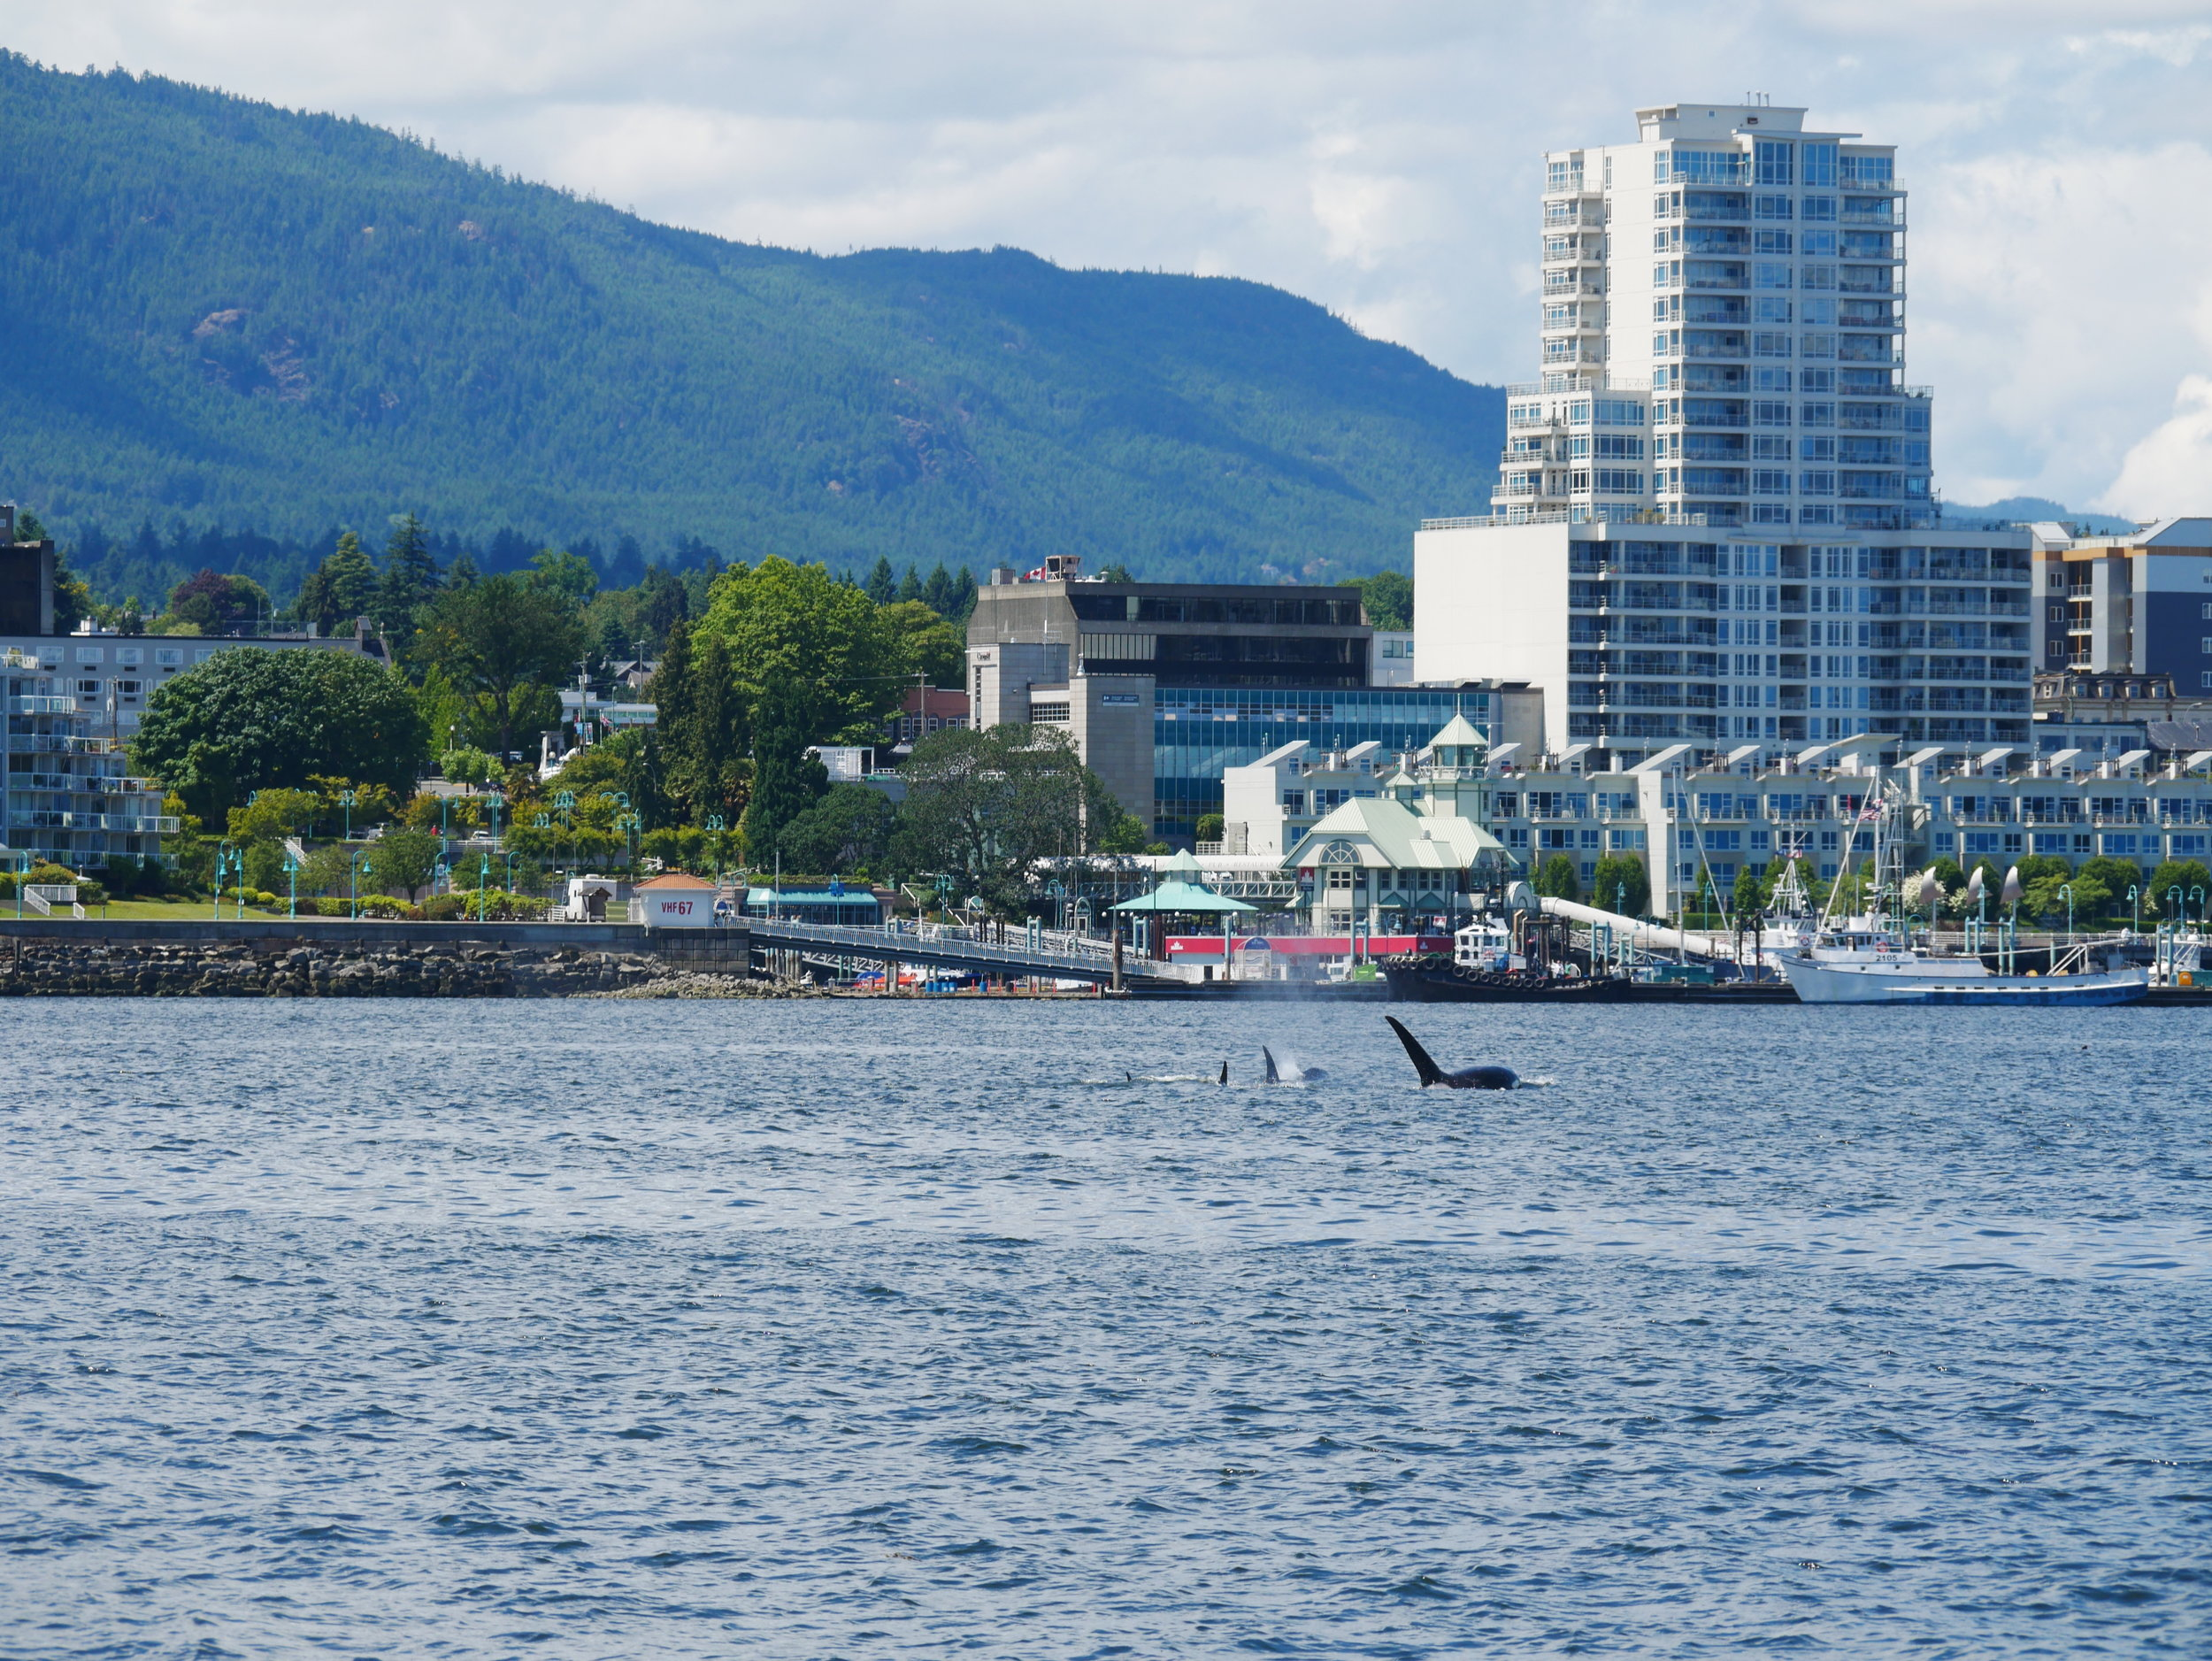 Killer whales swimming in front of Nanaimo harbour! Photo by Mike Campbell